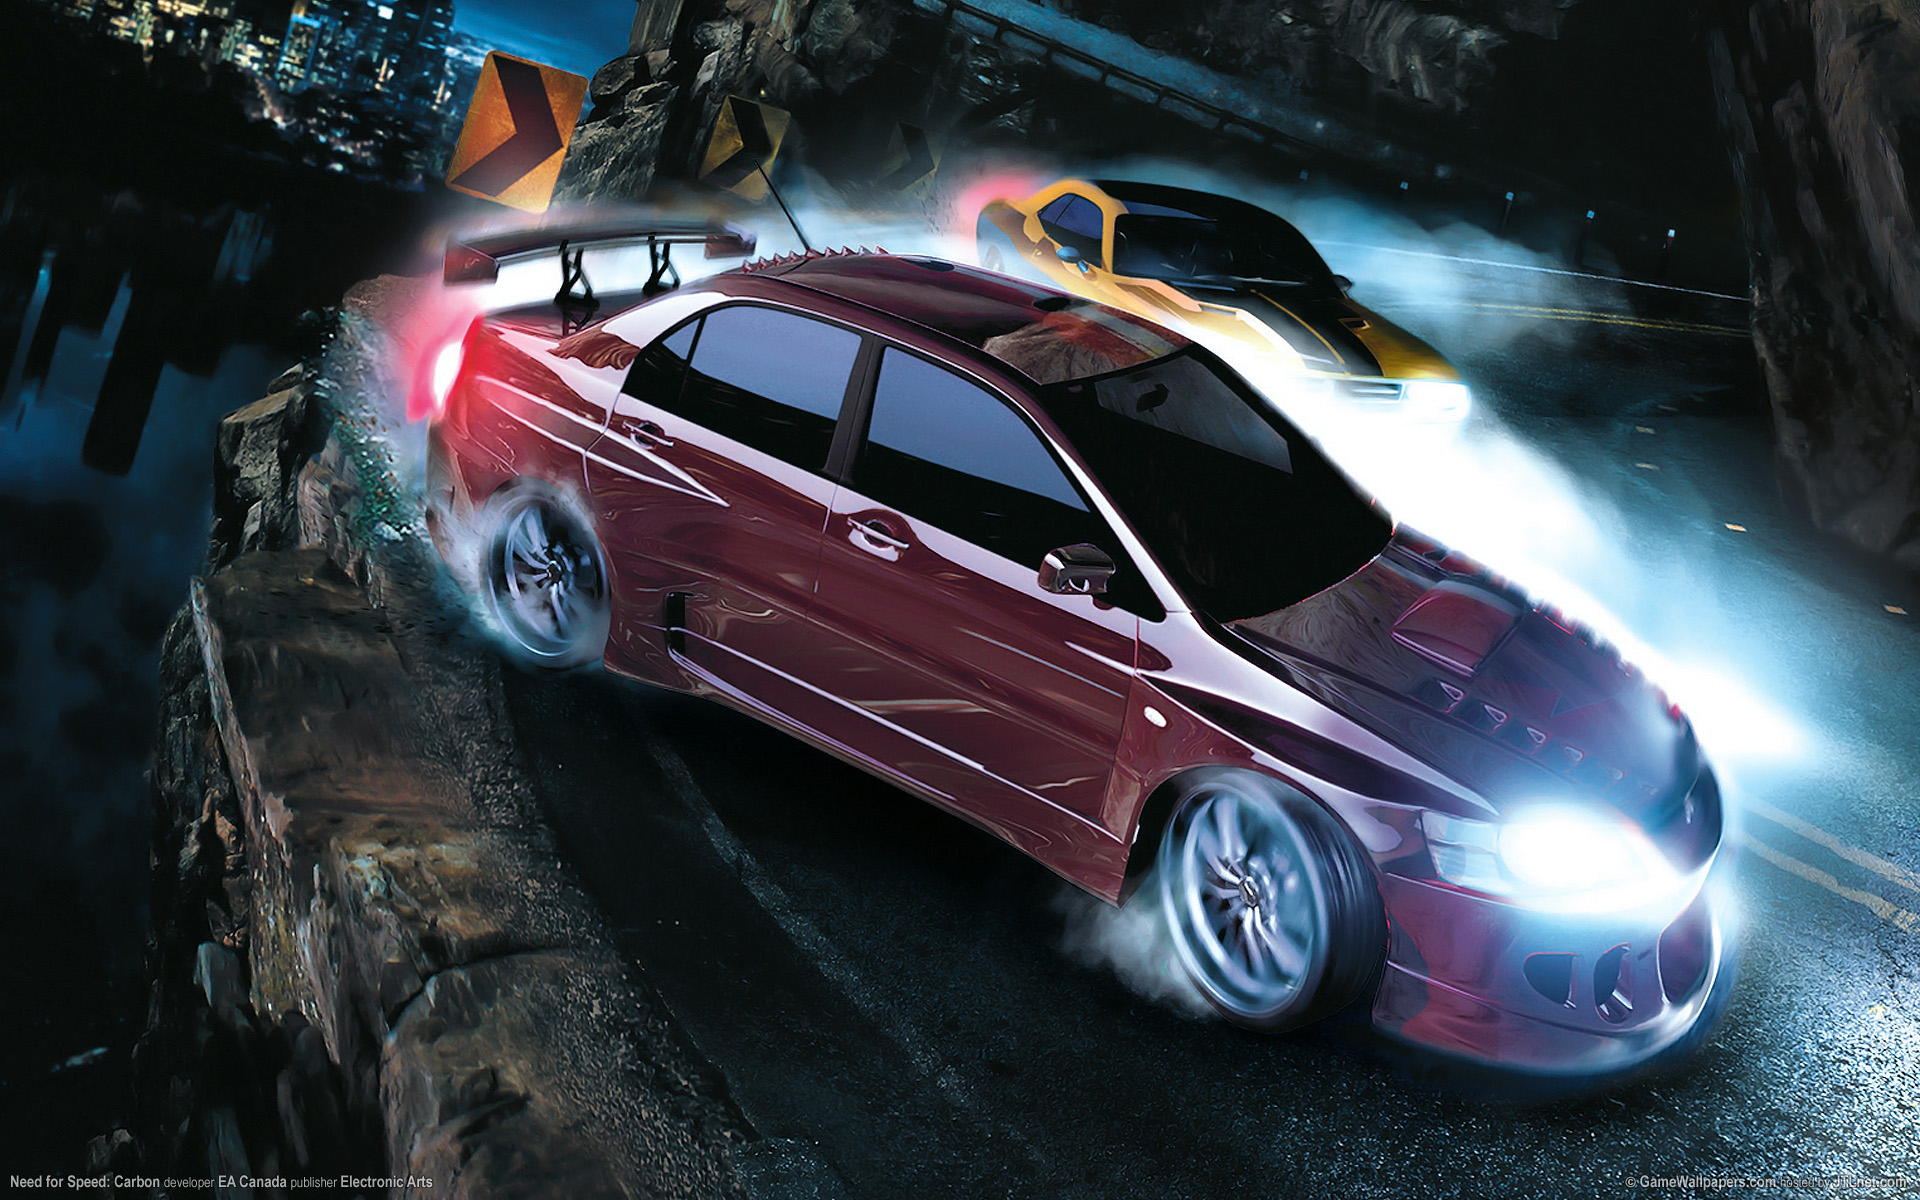 Carbon Nfs Car Duel The Free Hd For 679854 Wallpaper wallpaper